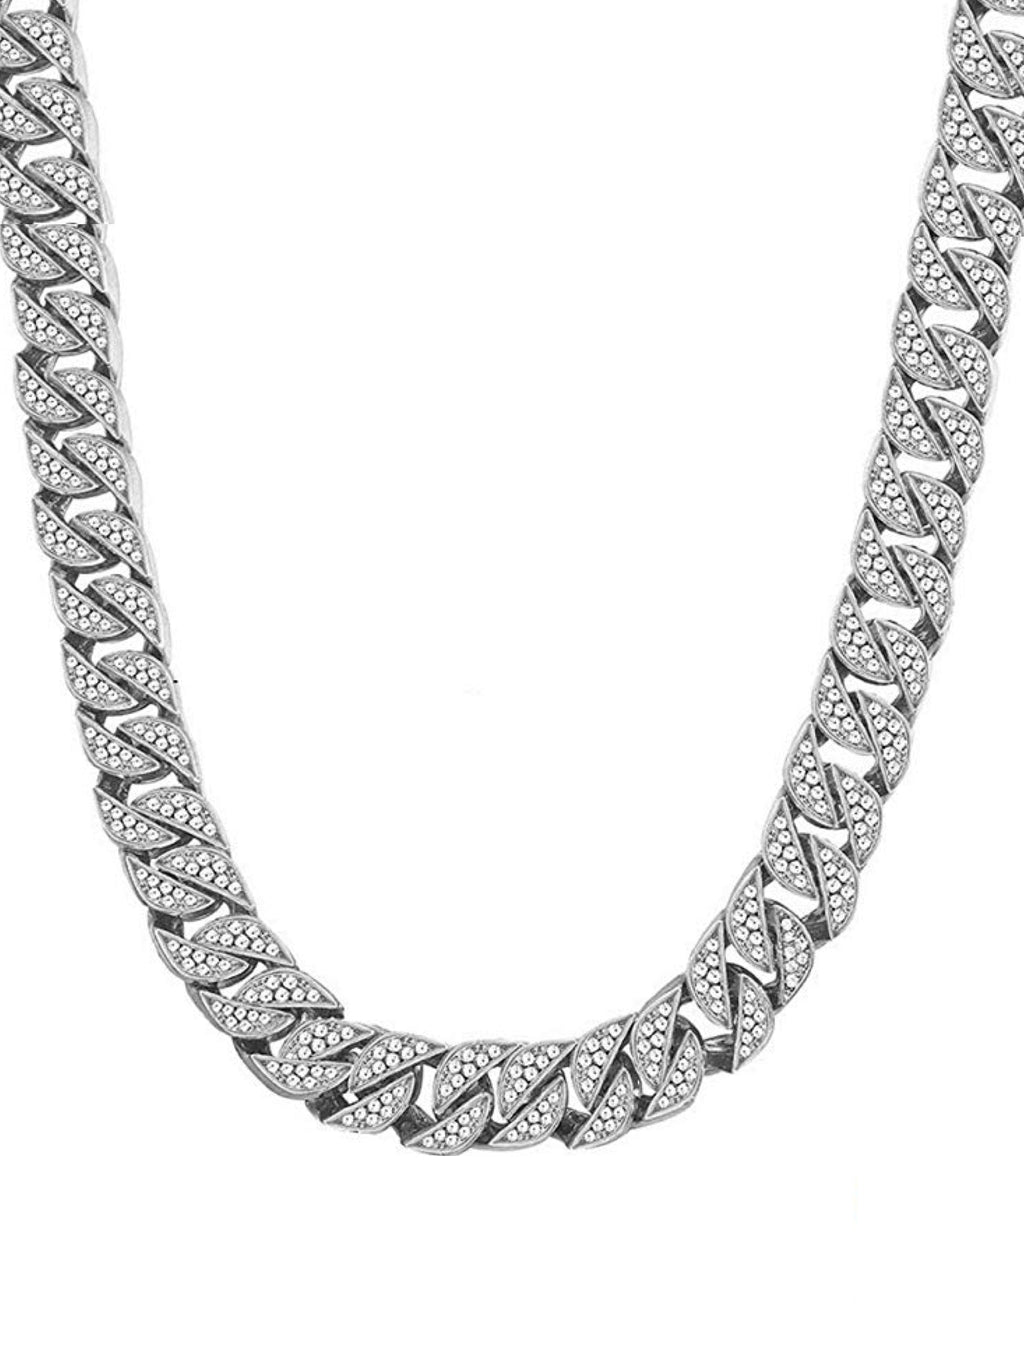 Silver Cz Link Necklace